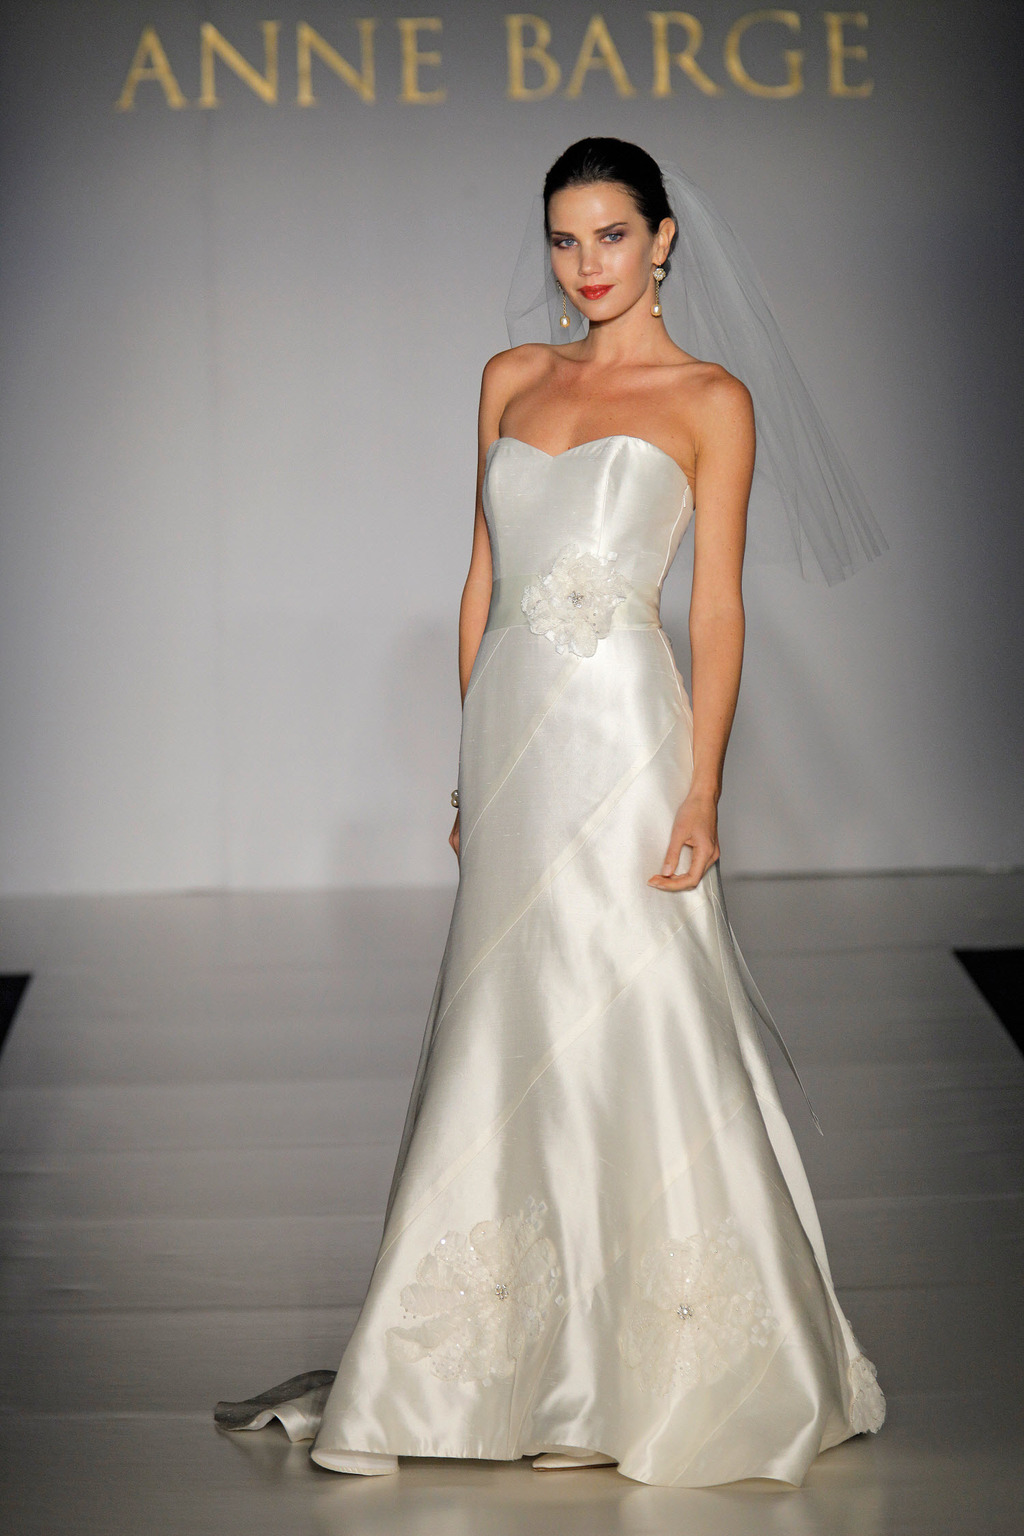 Fall-2011-wedding-dresses-anne-barge-ryan-strapless-ivory-simple-bridal-gown-floral-bridal-sash-2.full